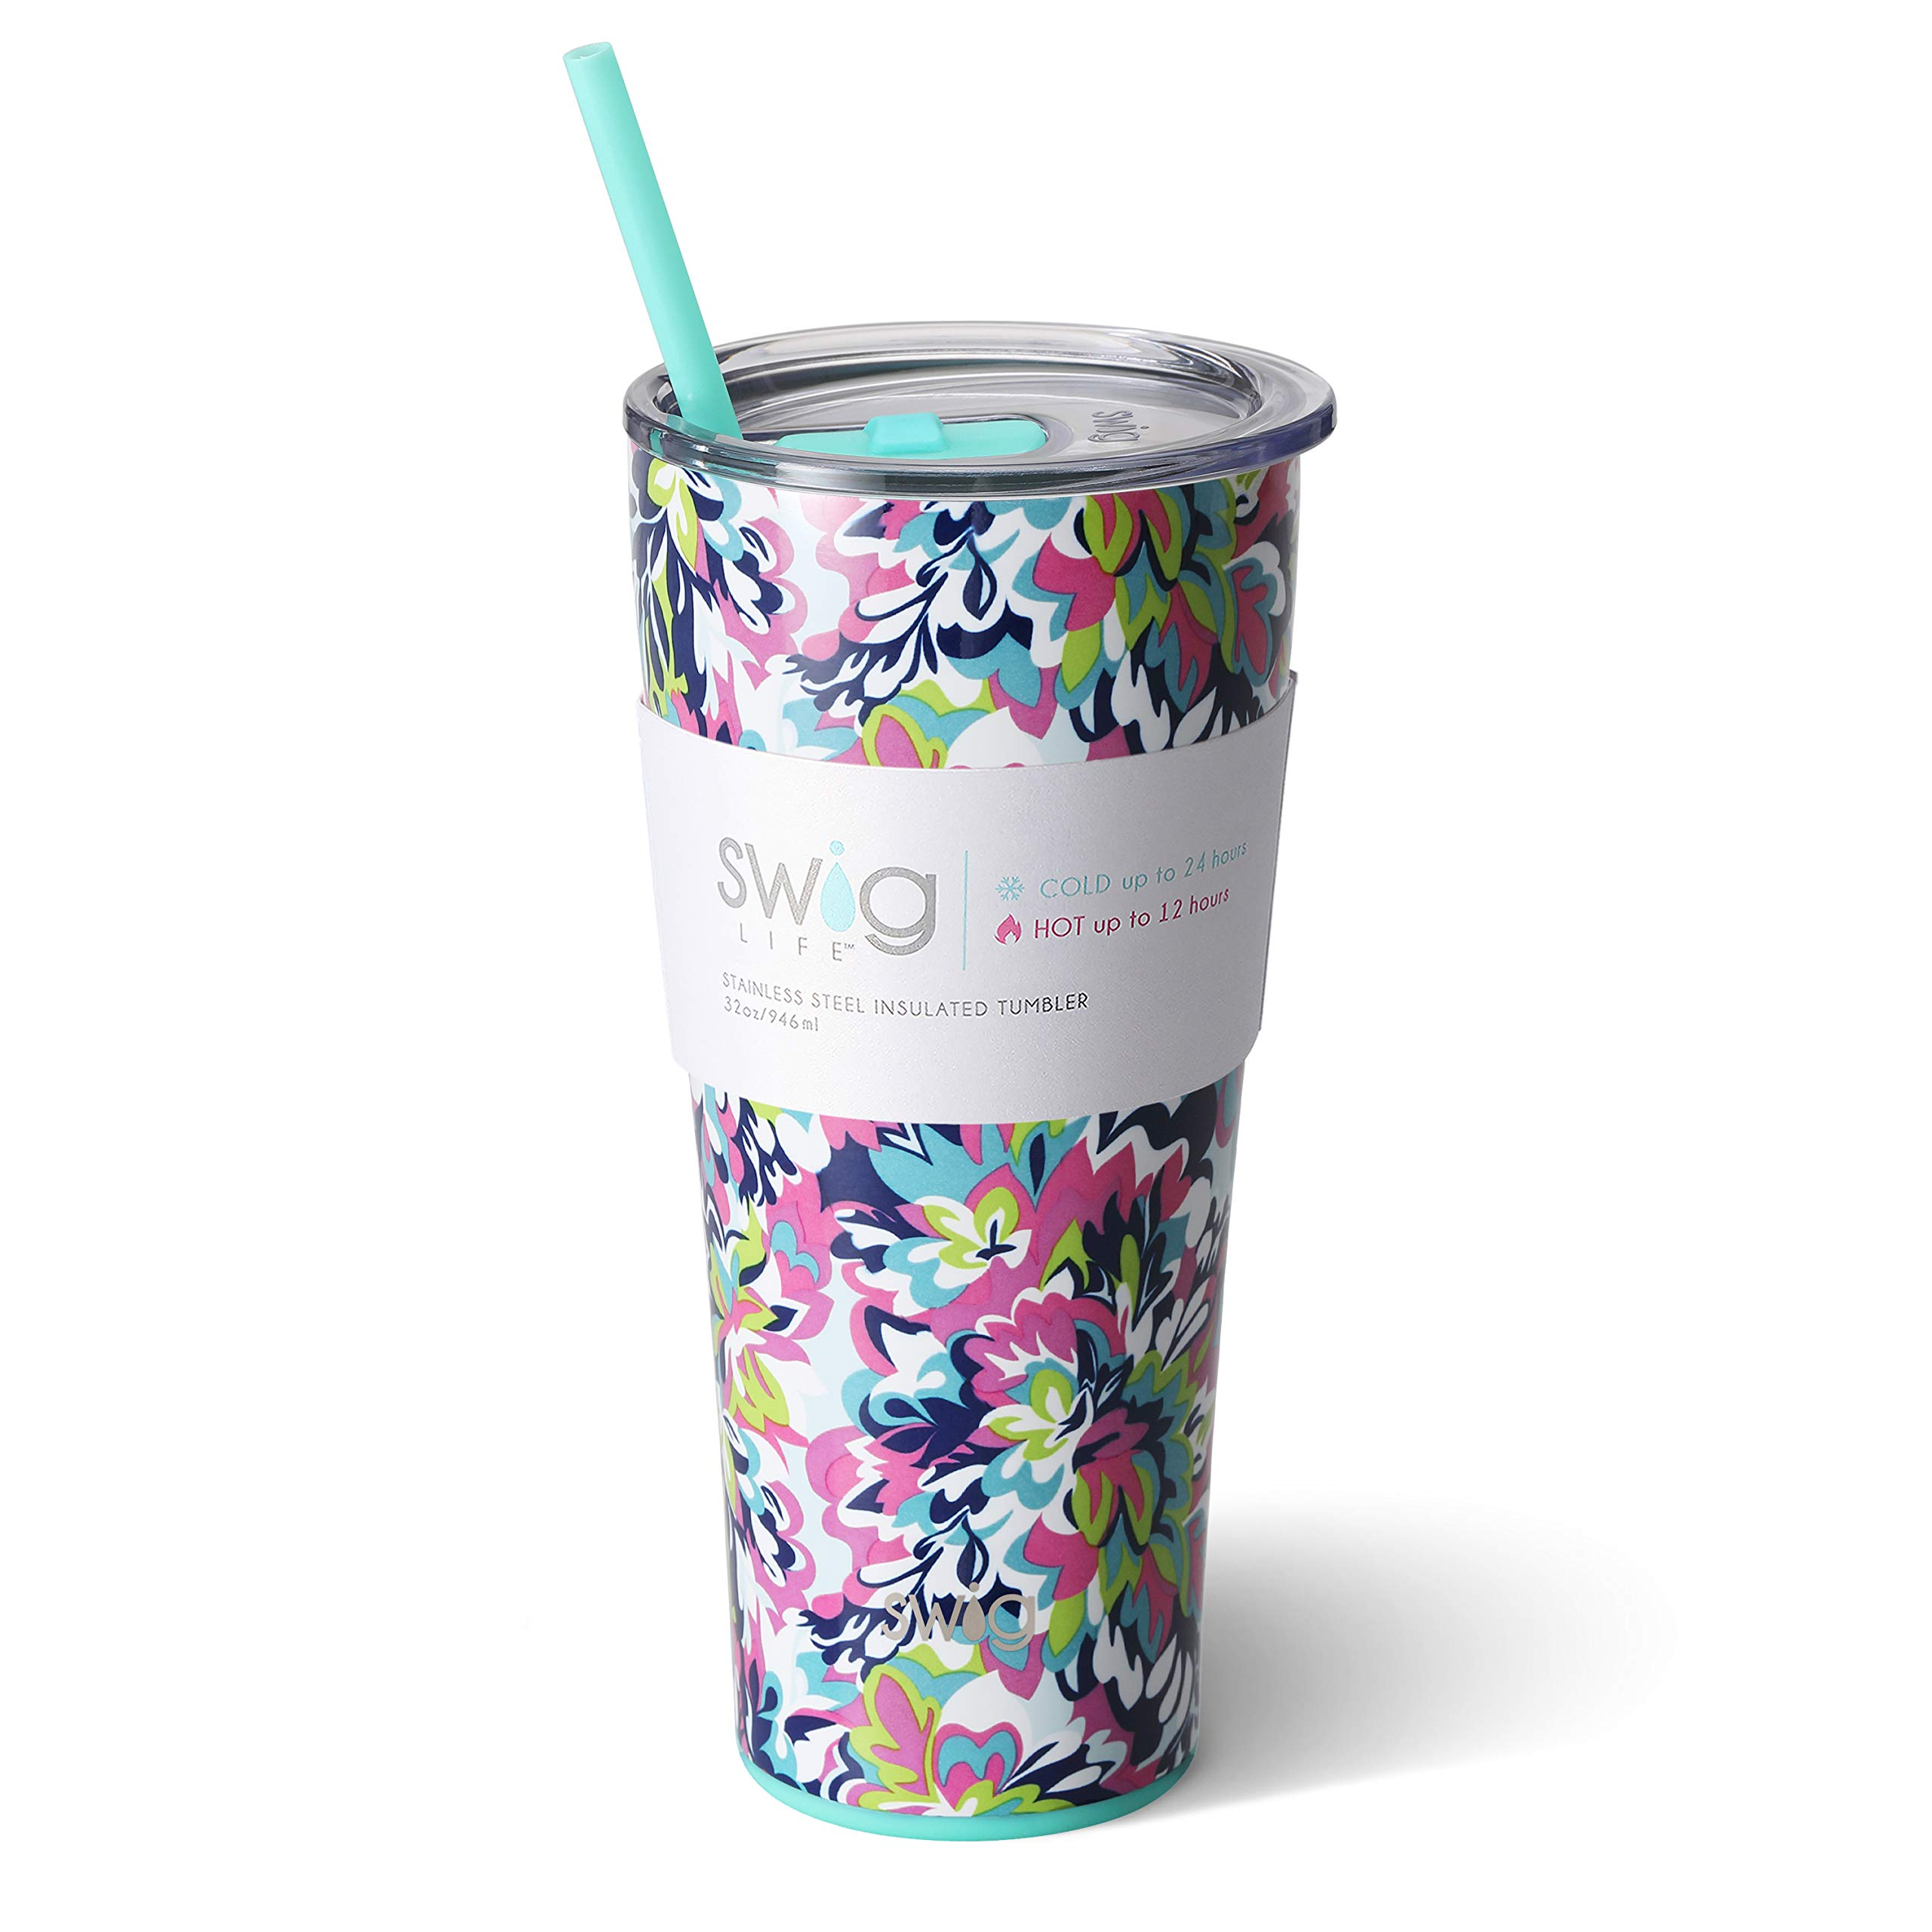 Swig Life Stainless Steel Signature 32oz Tumbler with Spill Resistant Slider Lid and Reusable Straw in Frilly Lilly